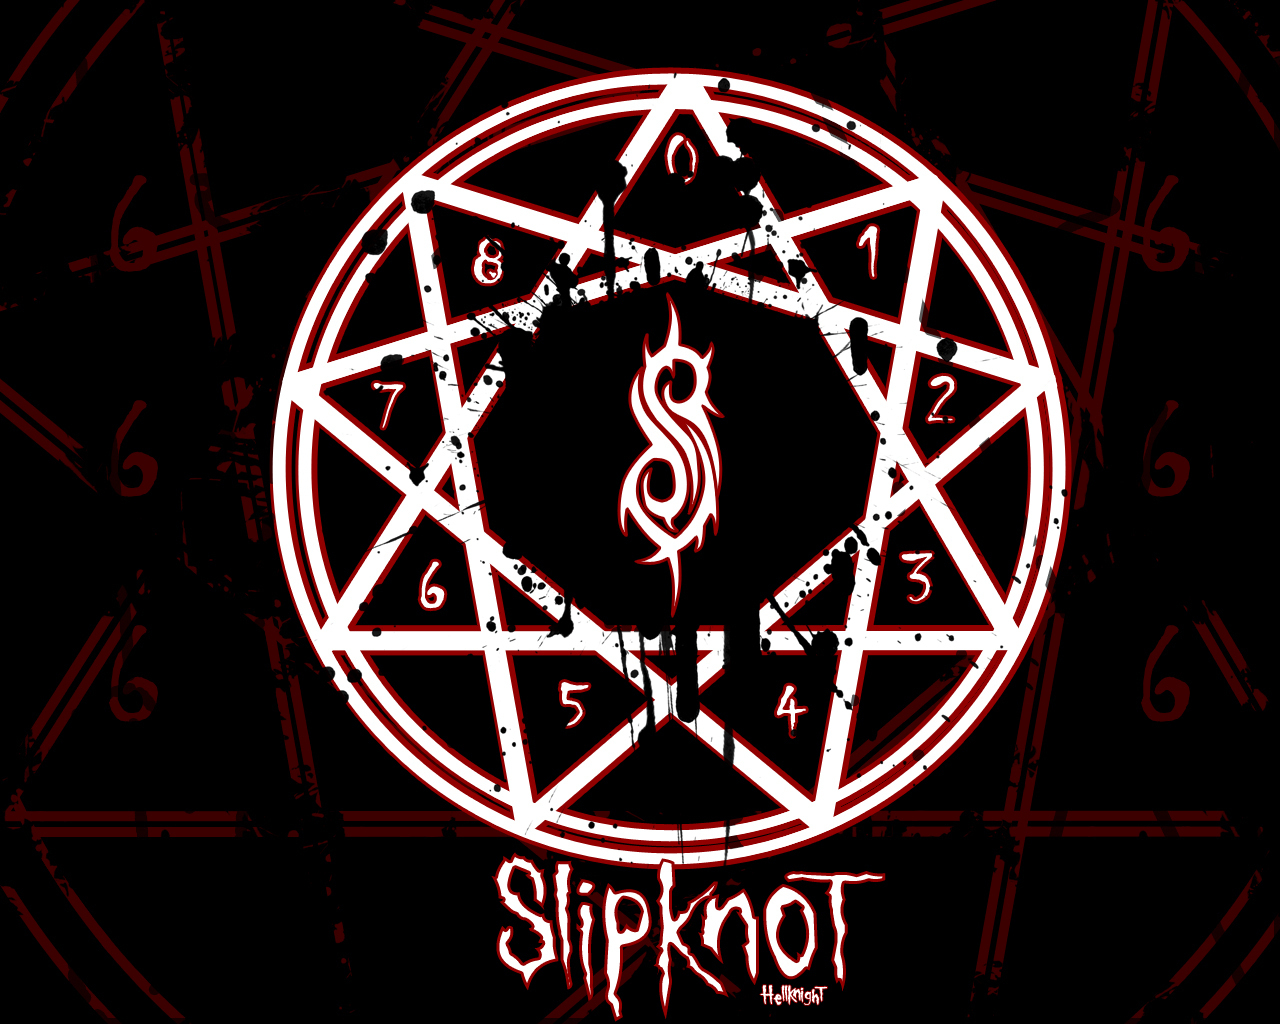 http://images2.fanpop.com/images/photos/6800000/Slipknot-s-logo-metal-gods-6810046-1280-1024.jpg